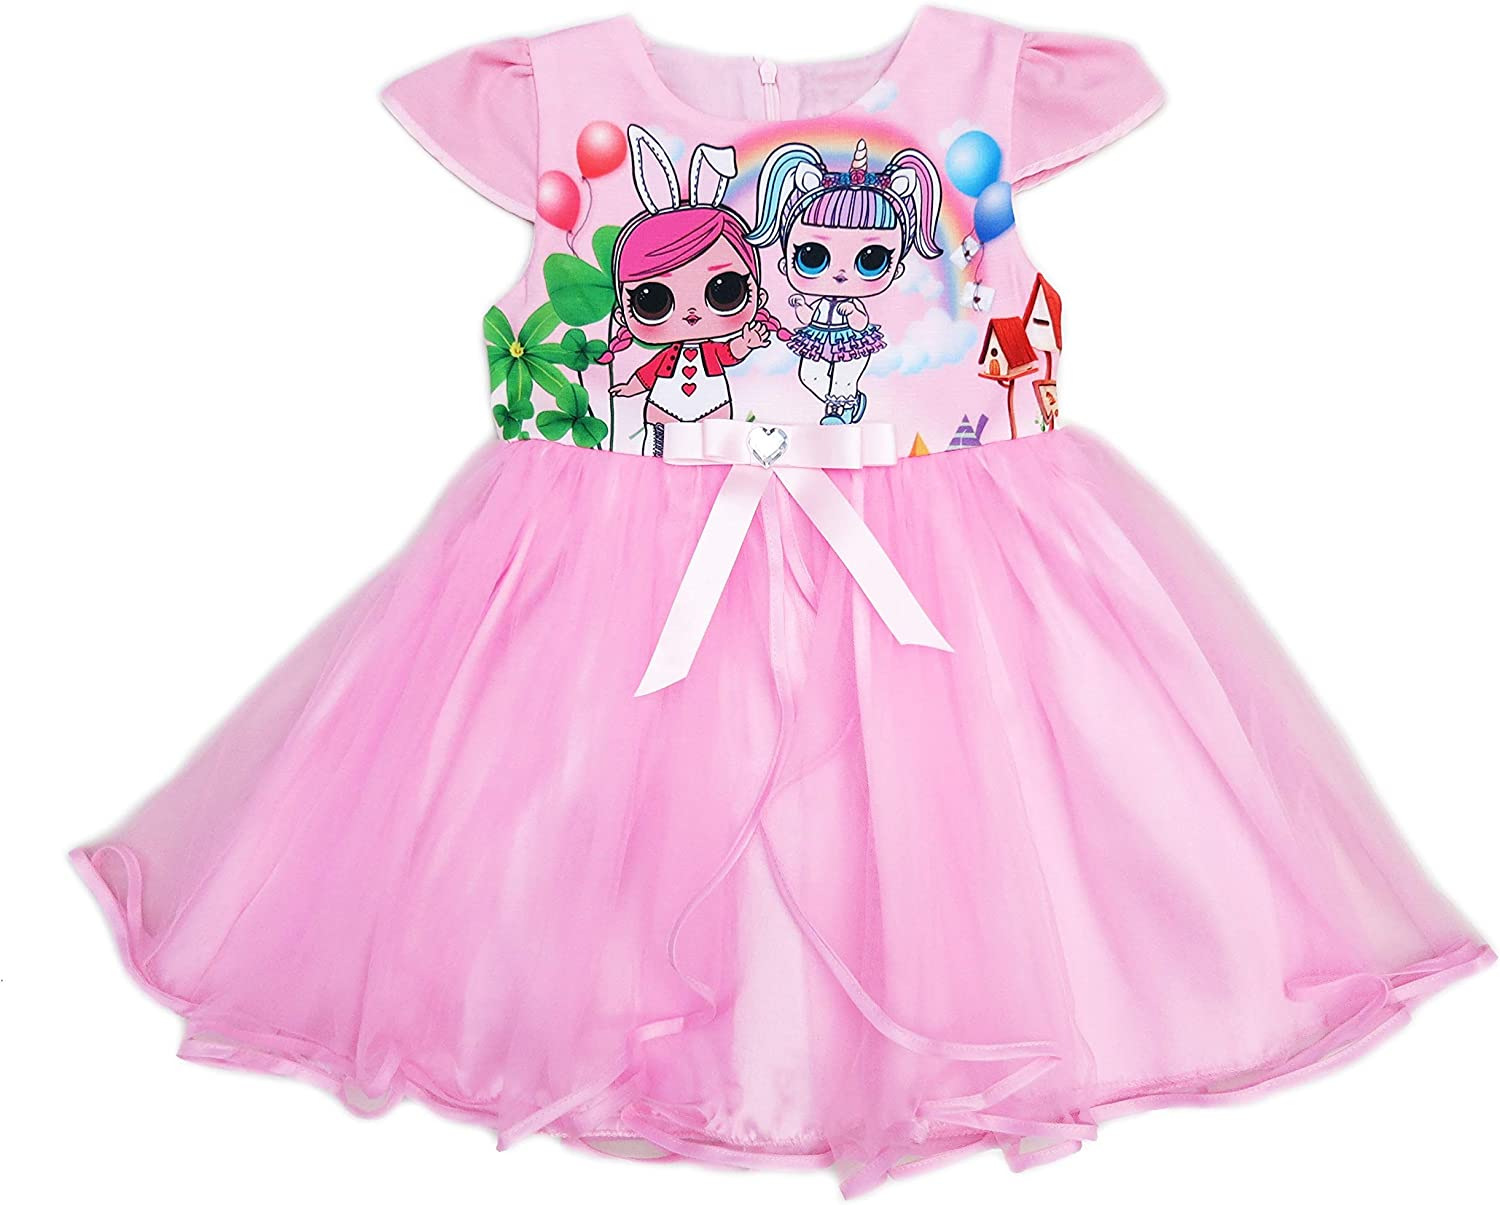 wenchoice Pink LOL Tulle Dress Girl's